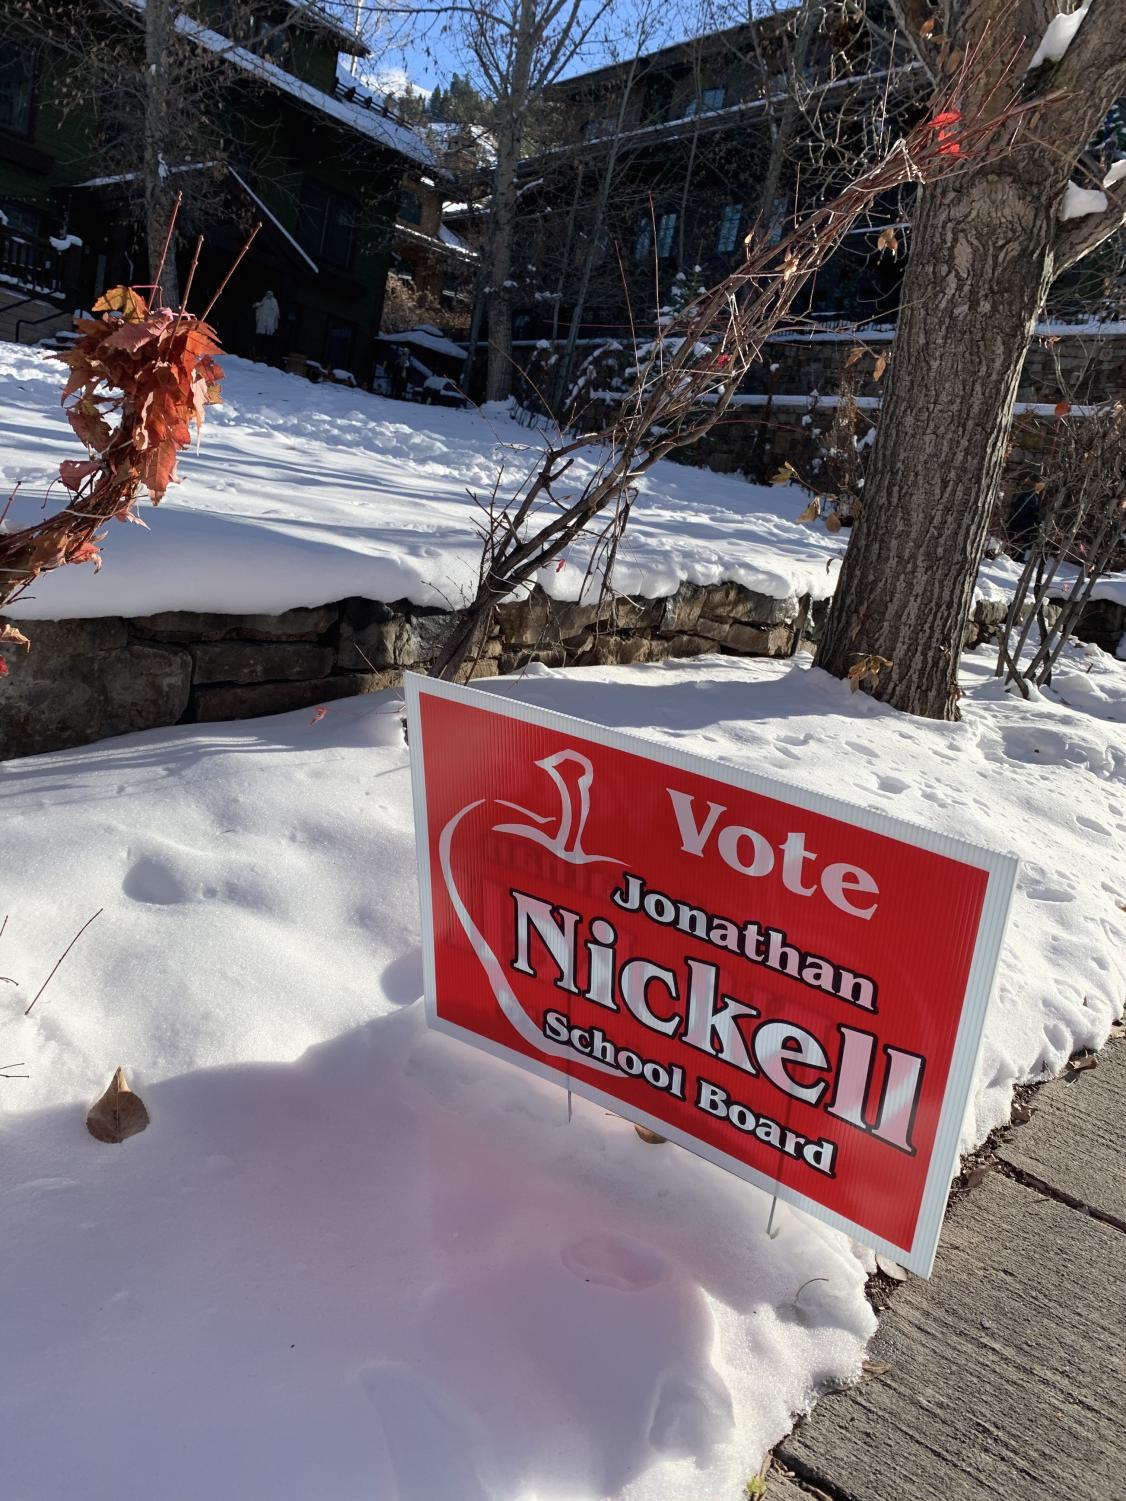 A campaign sign for Jonathan Nickell, one of the candidates who was elected to the board, in Aspen on a recent afternoon.